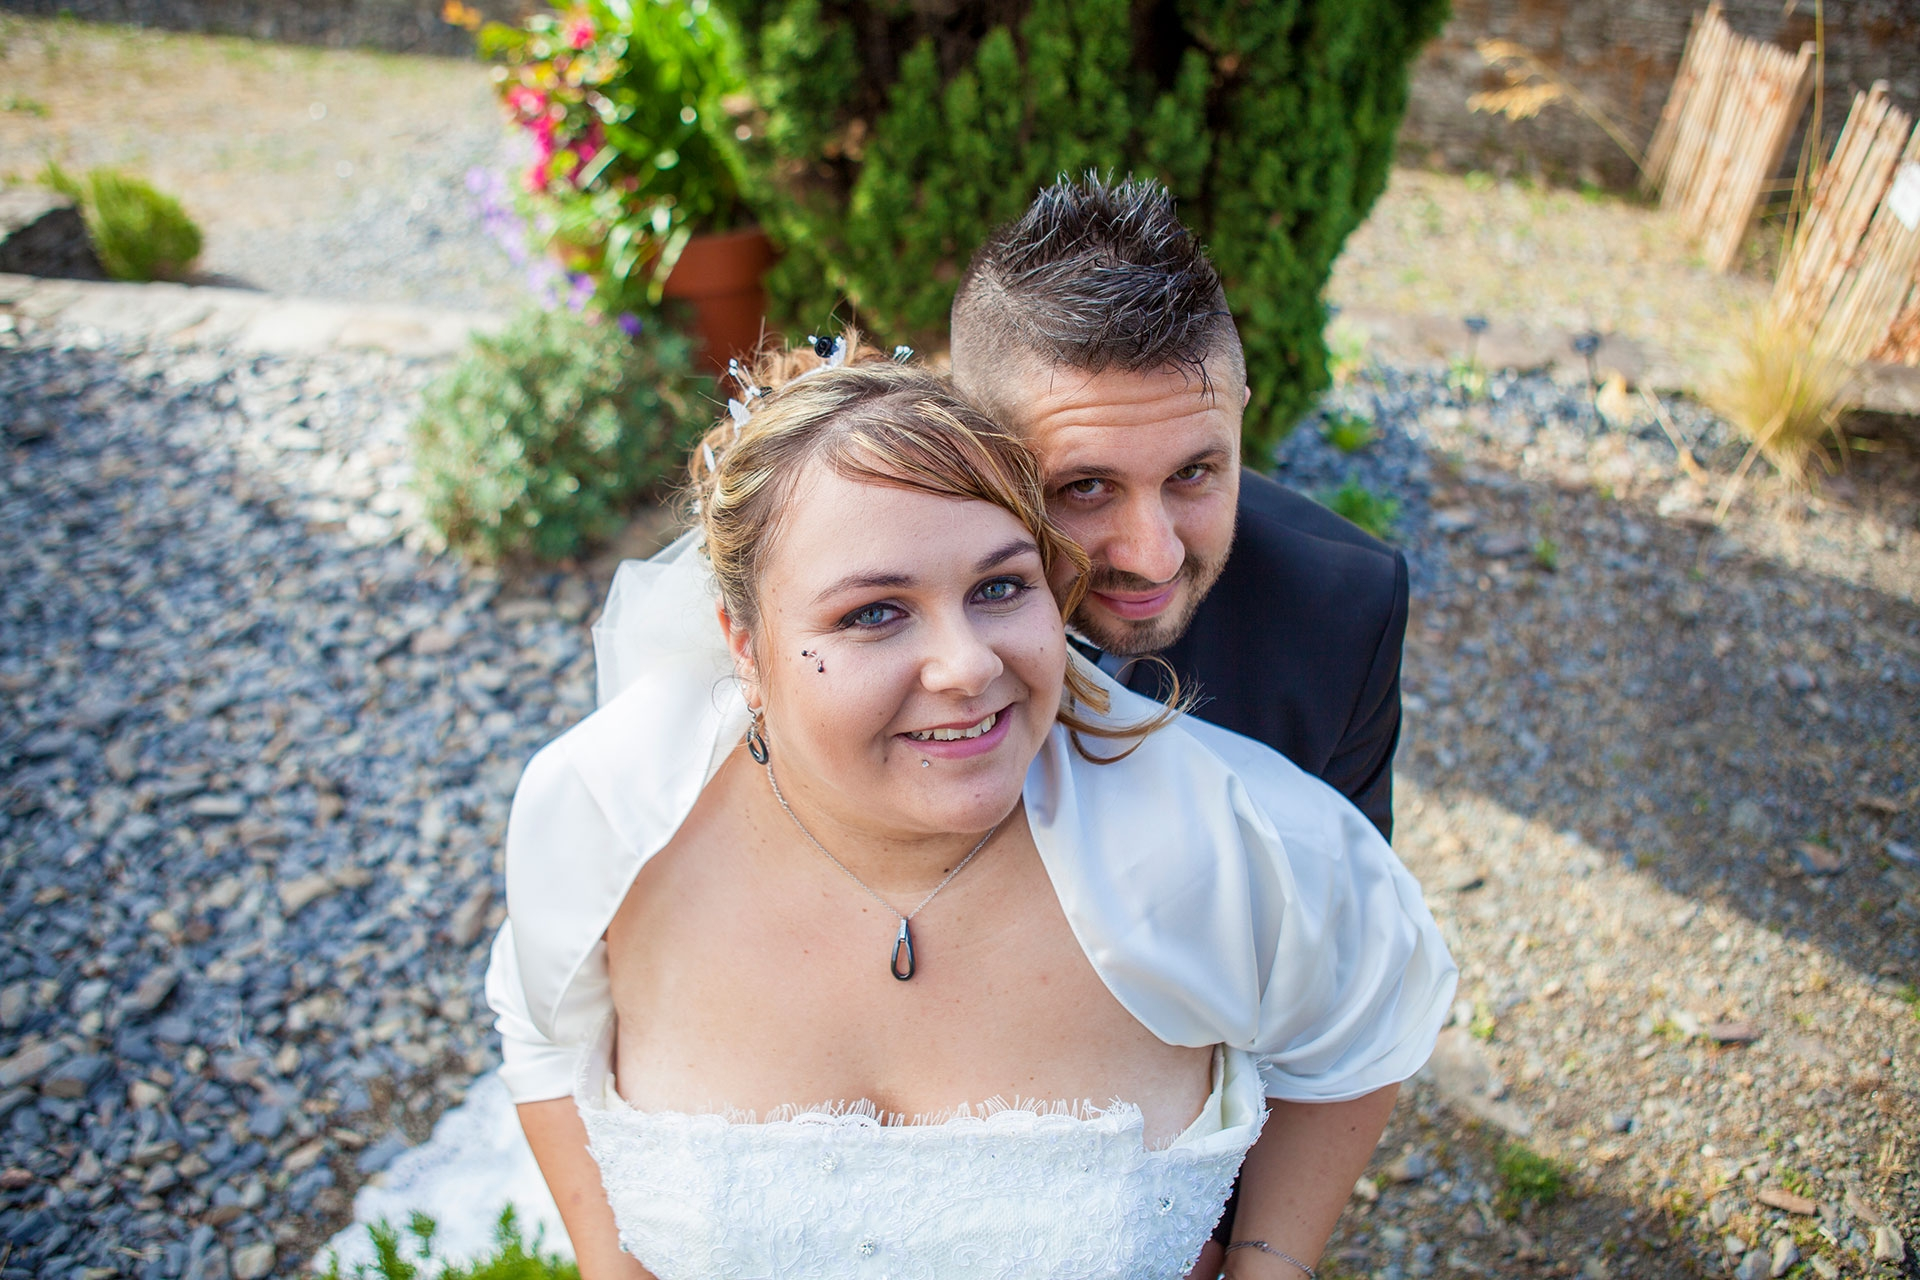 particuliers-evenements-mariages-oui-elodie&wilson-23